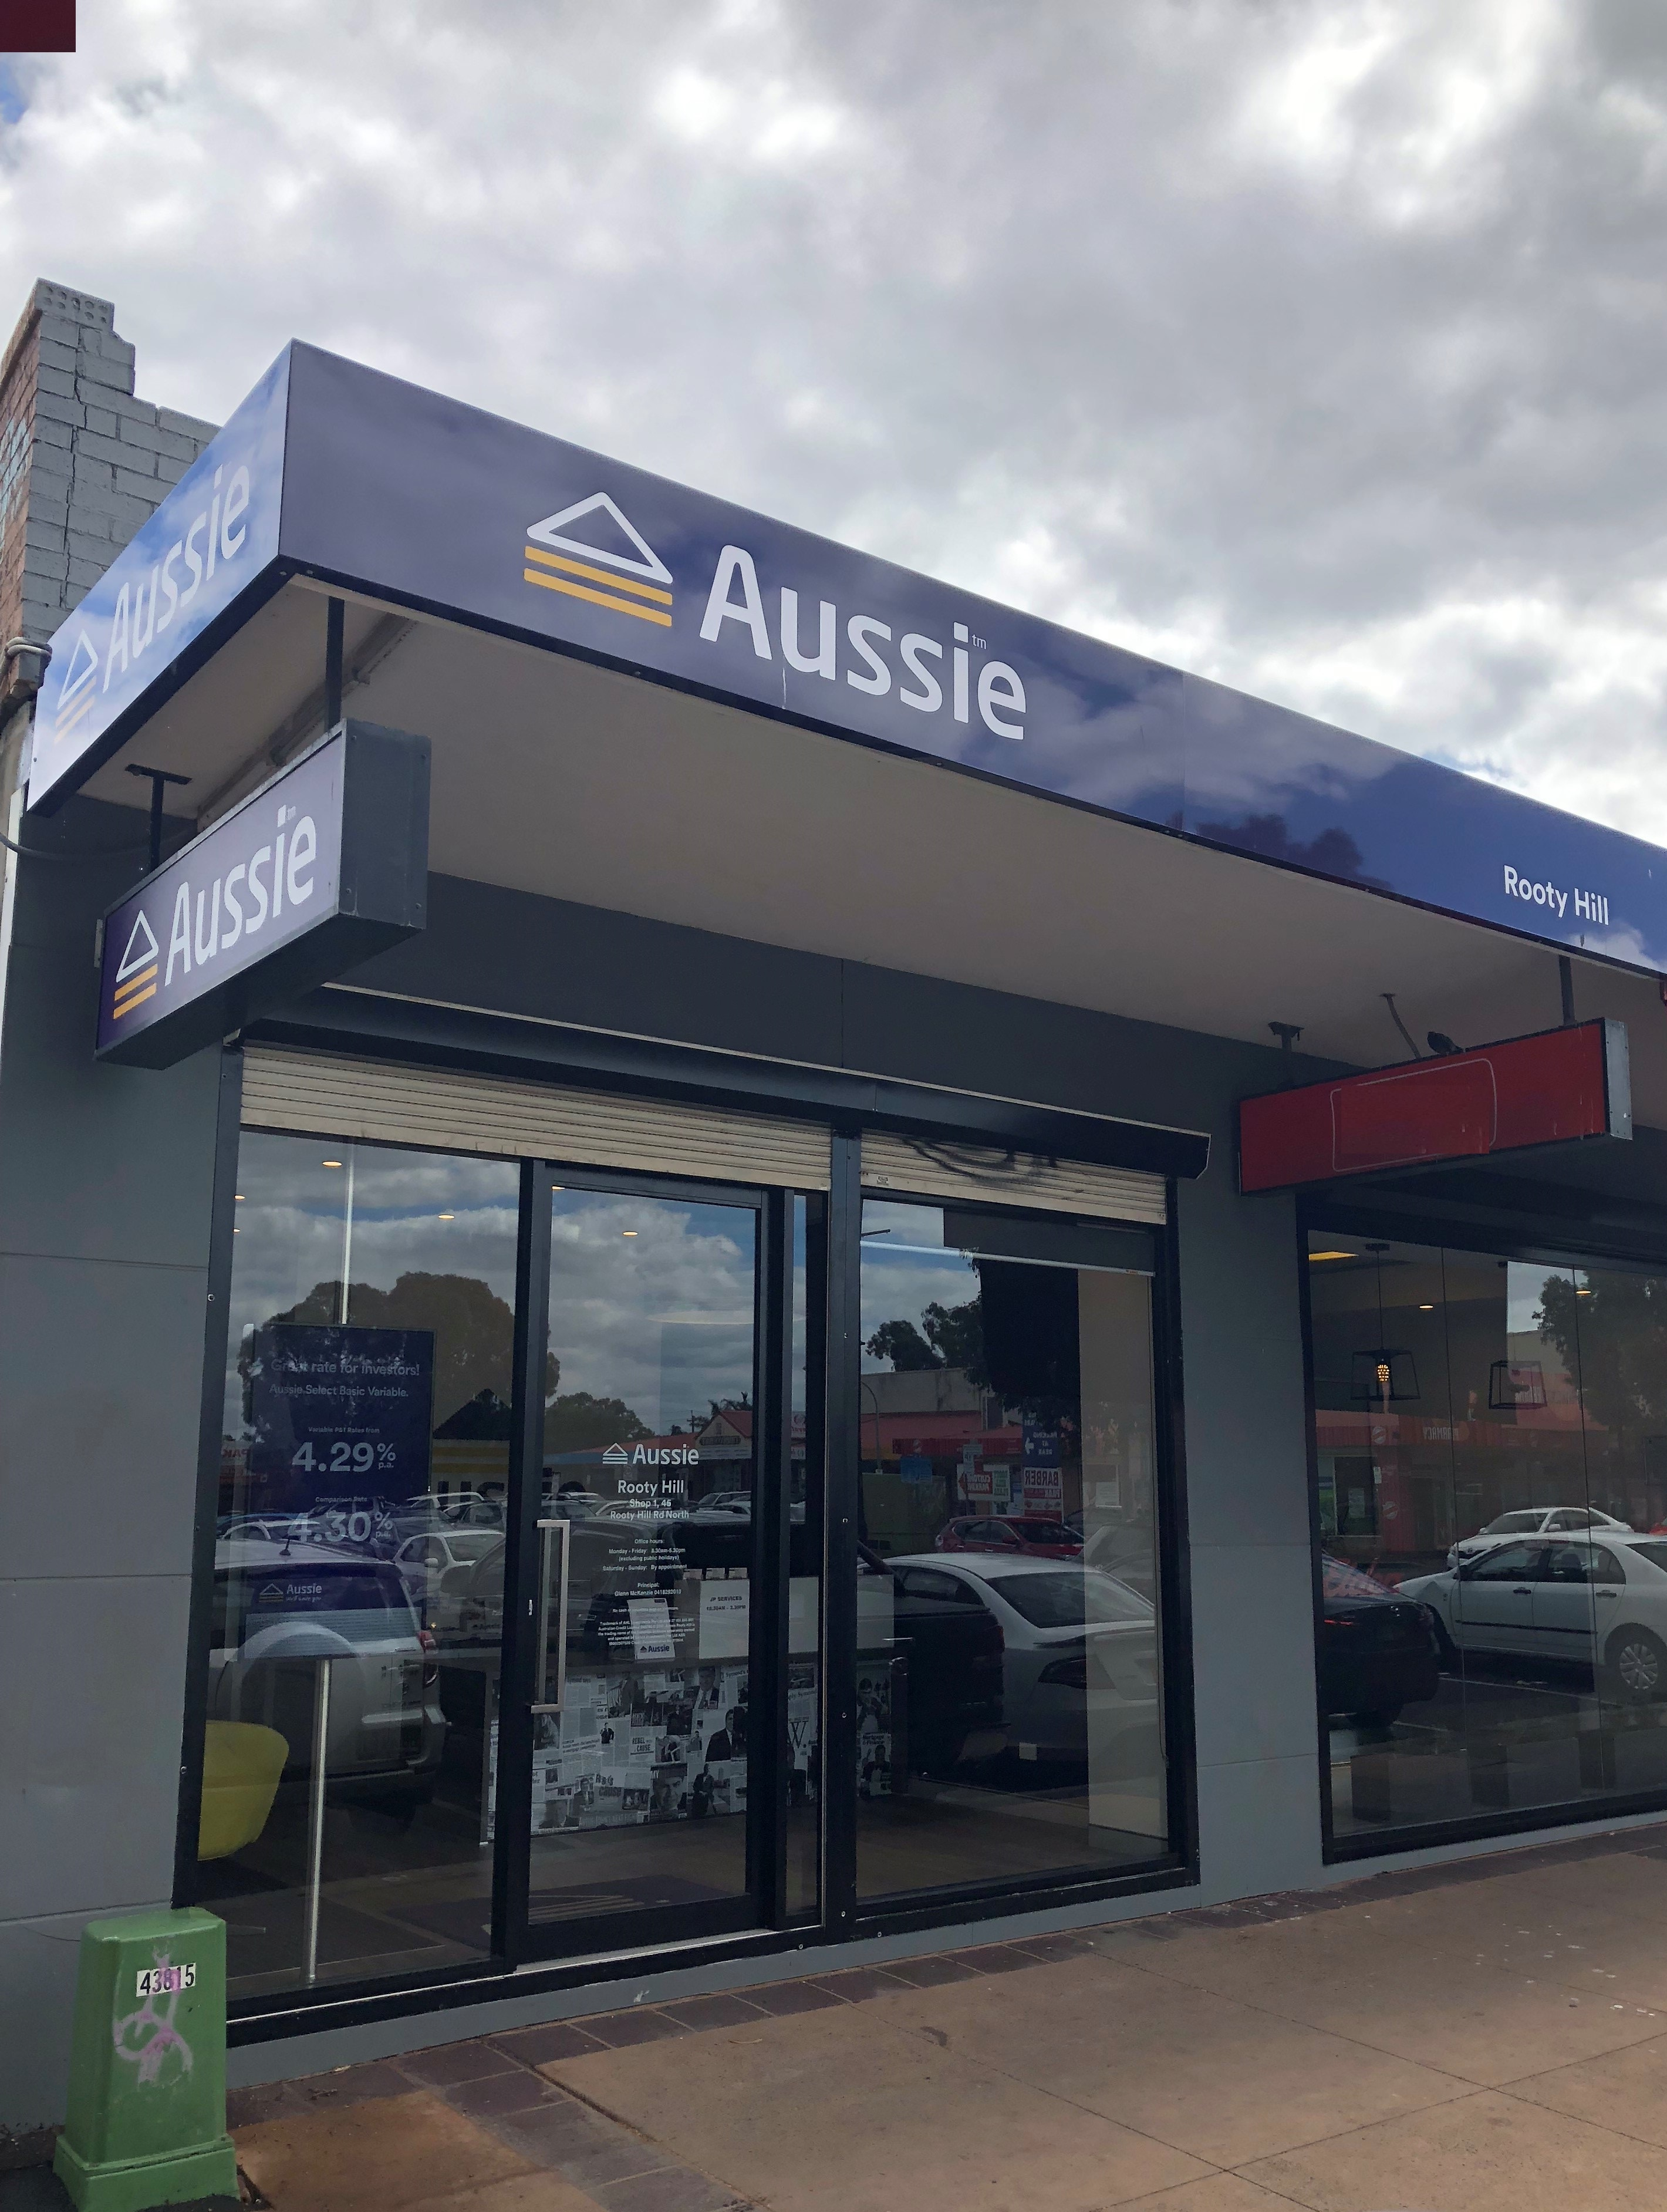 Existing Aussie store, establised 15 year business | Rooty Hill